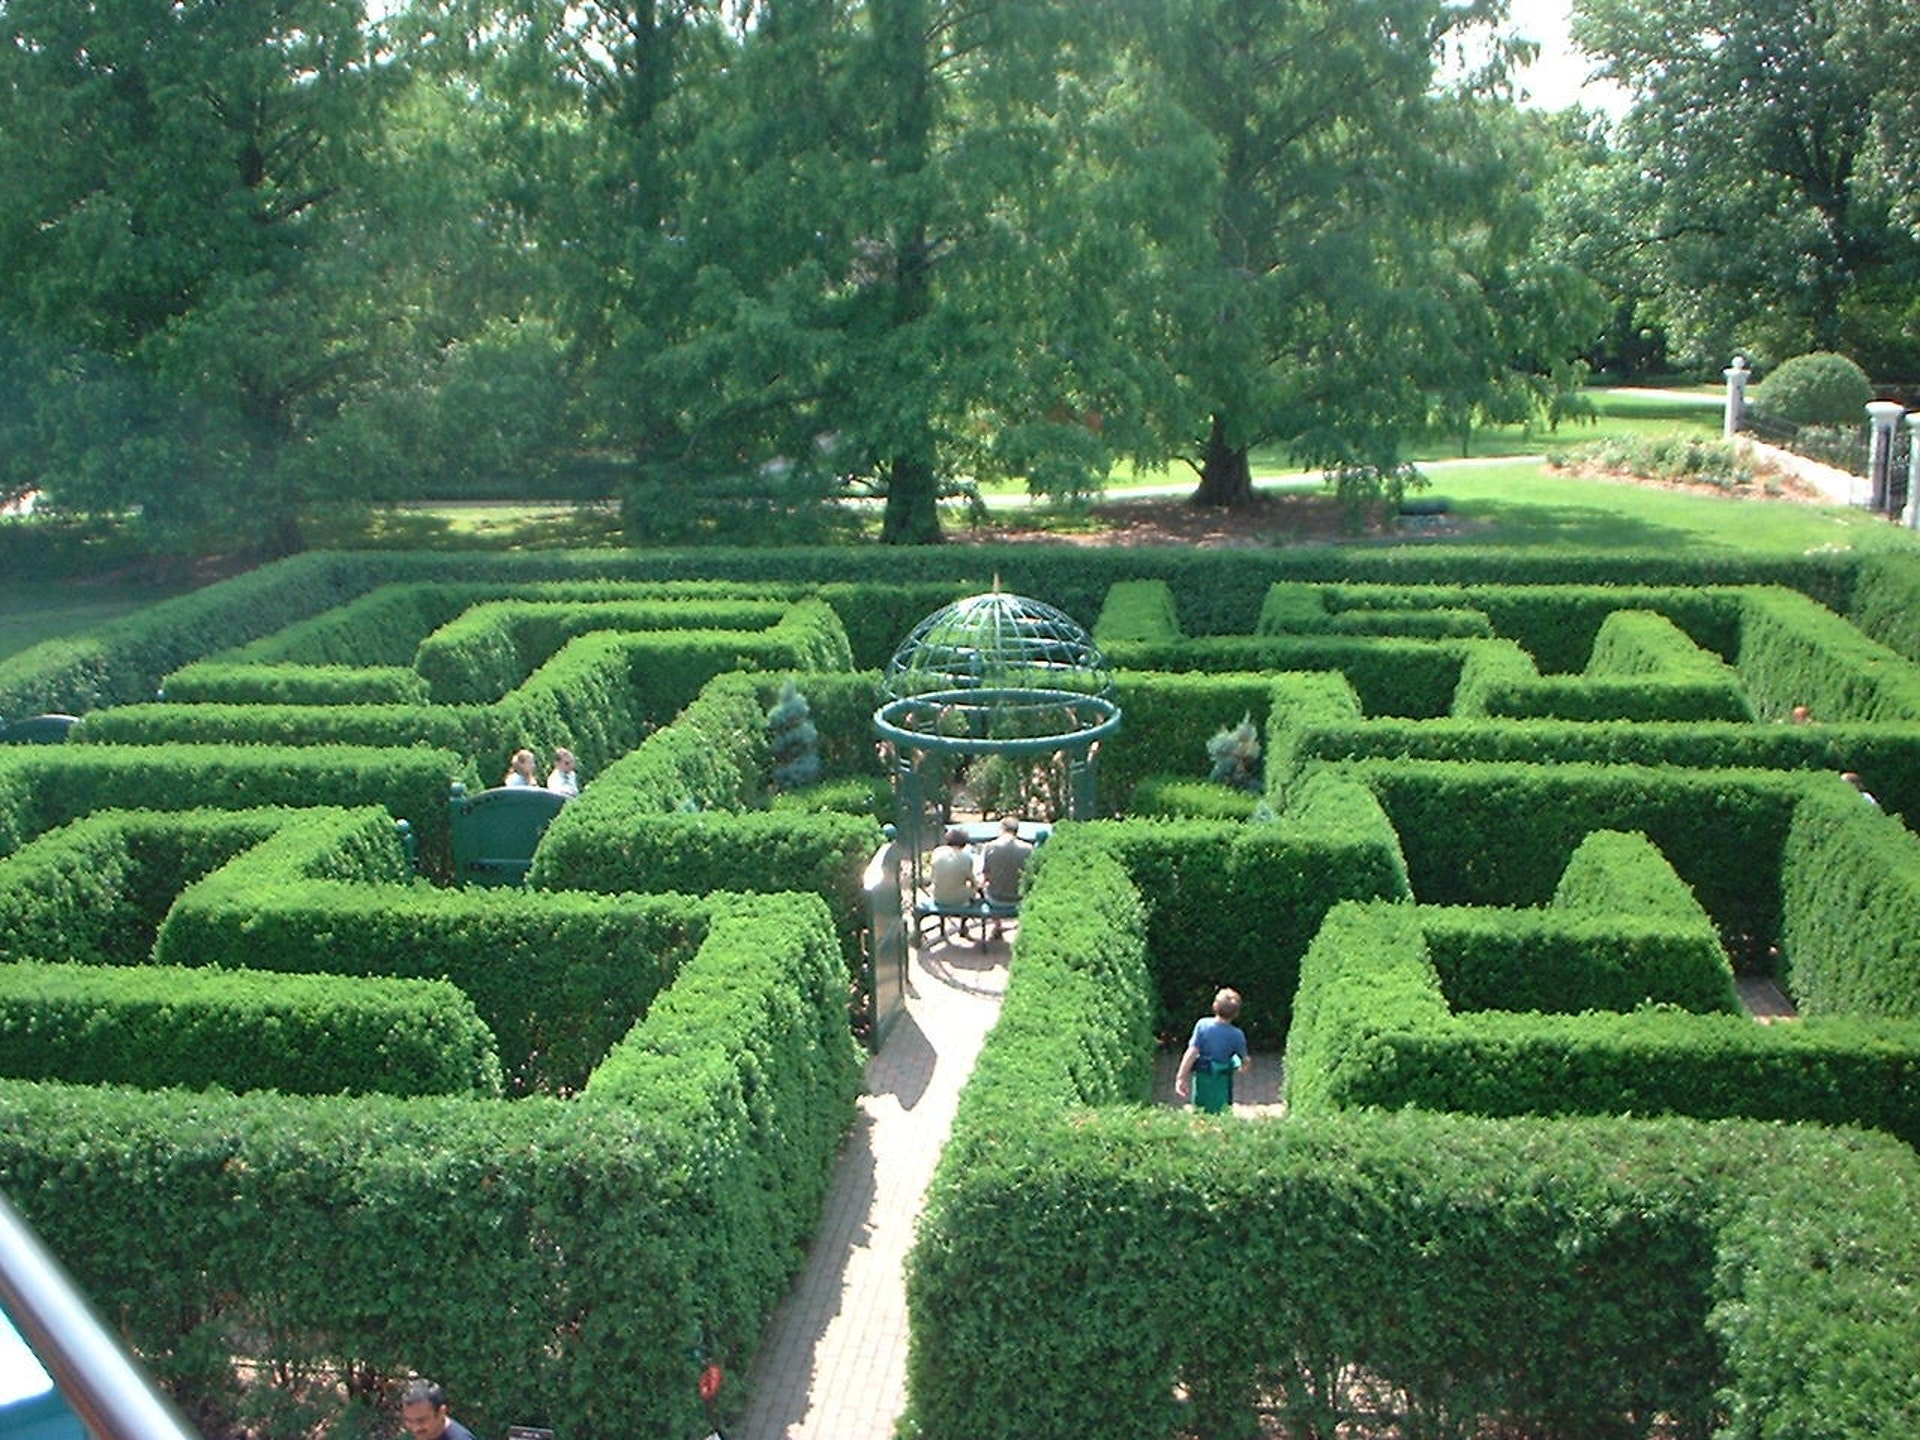 A hedge maze in St. Louis Botanical Gardens in Missouri.